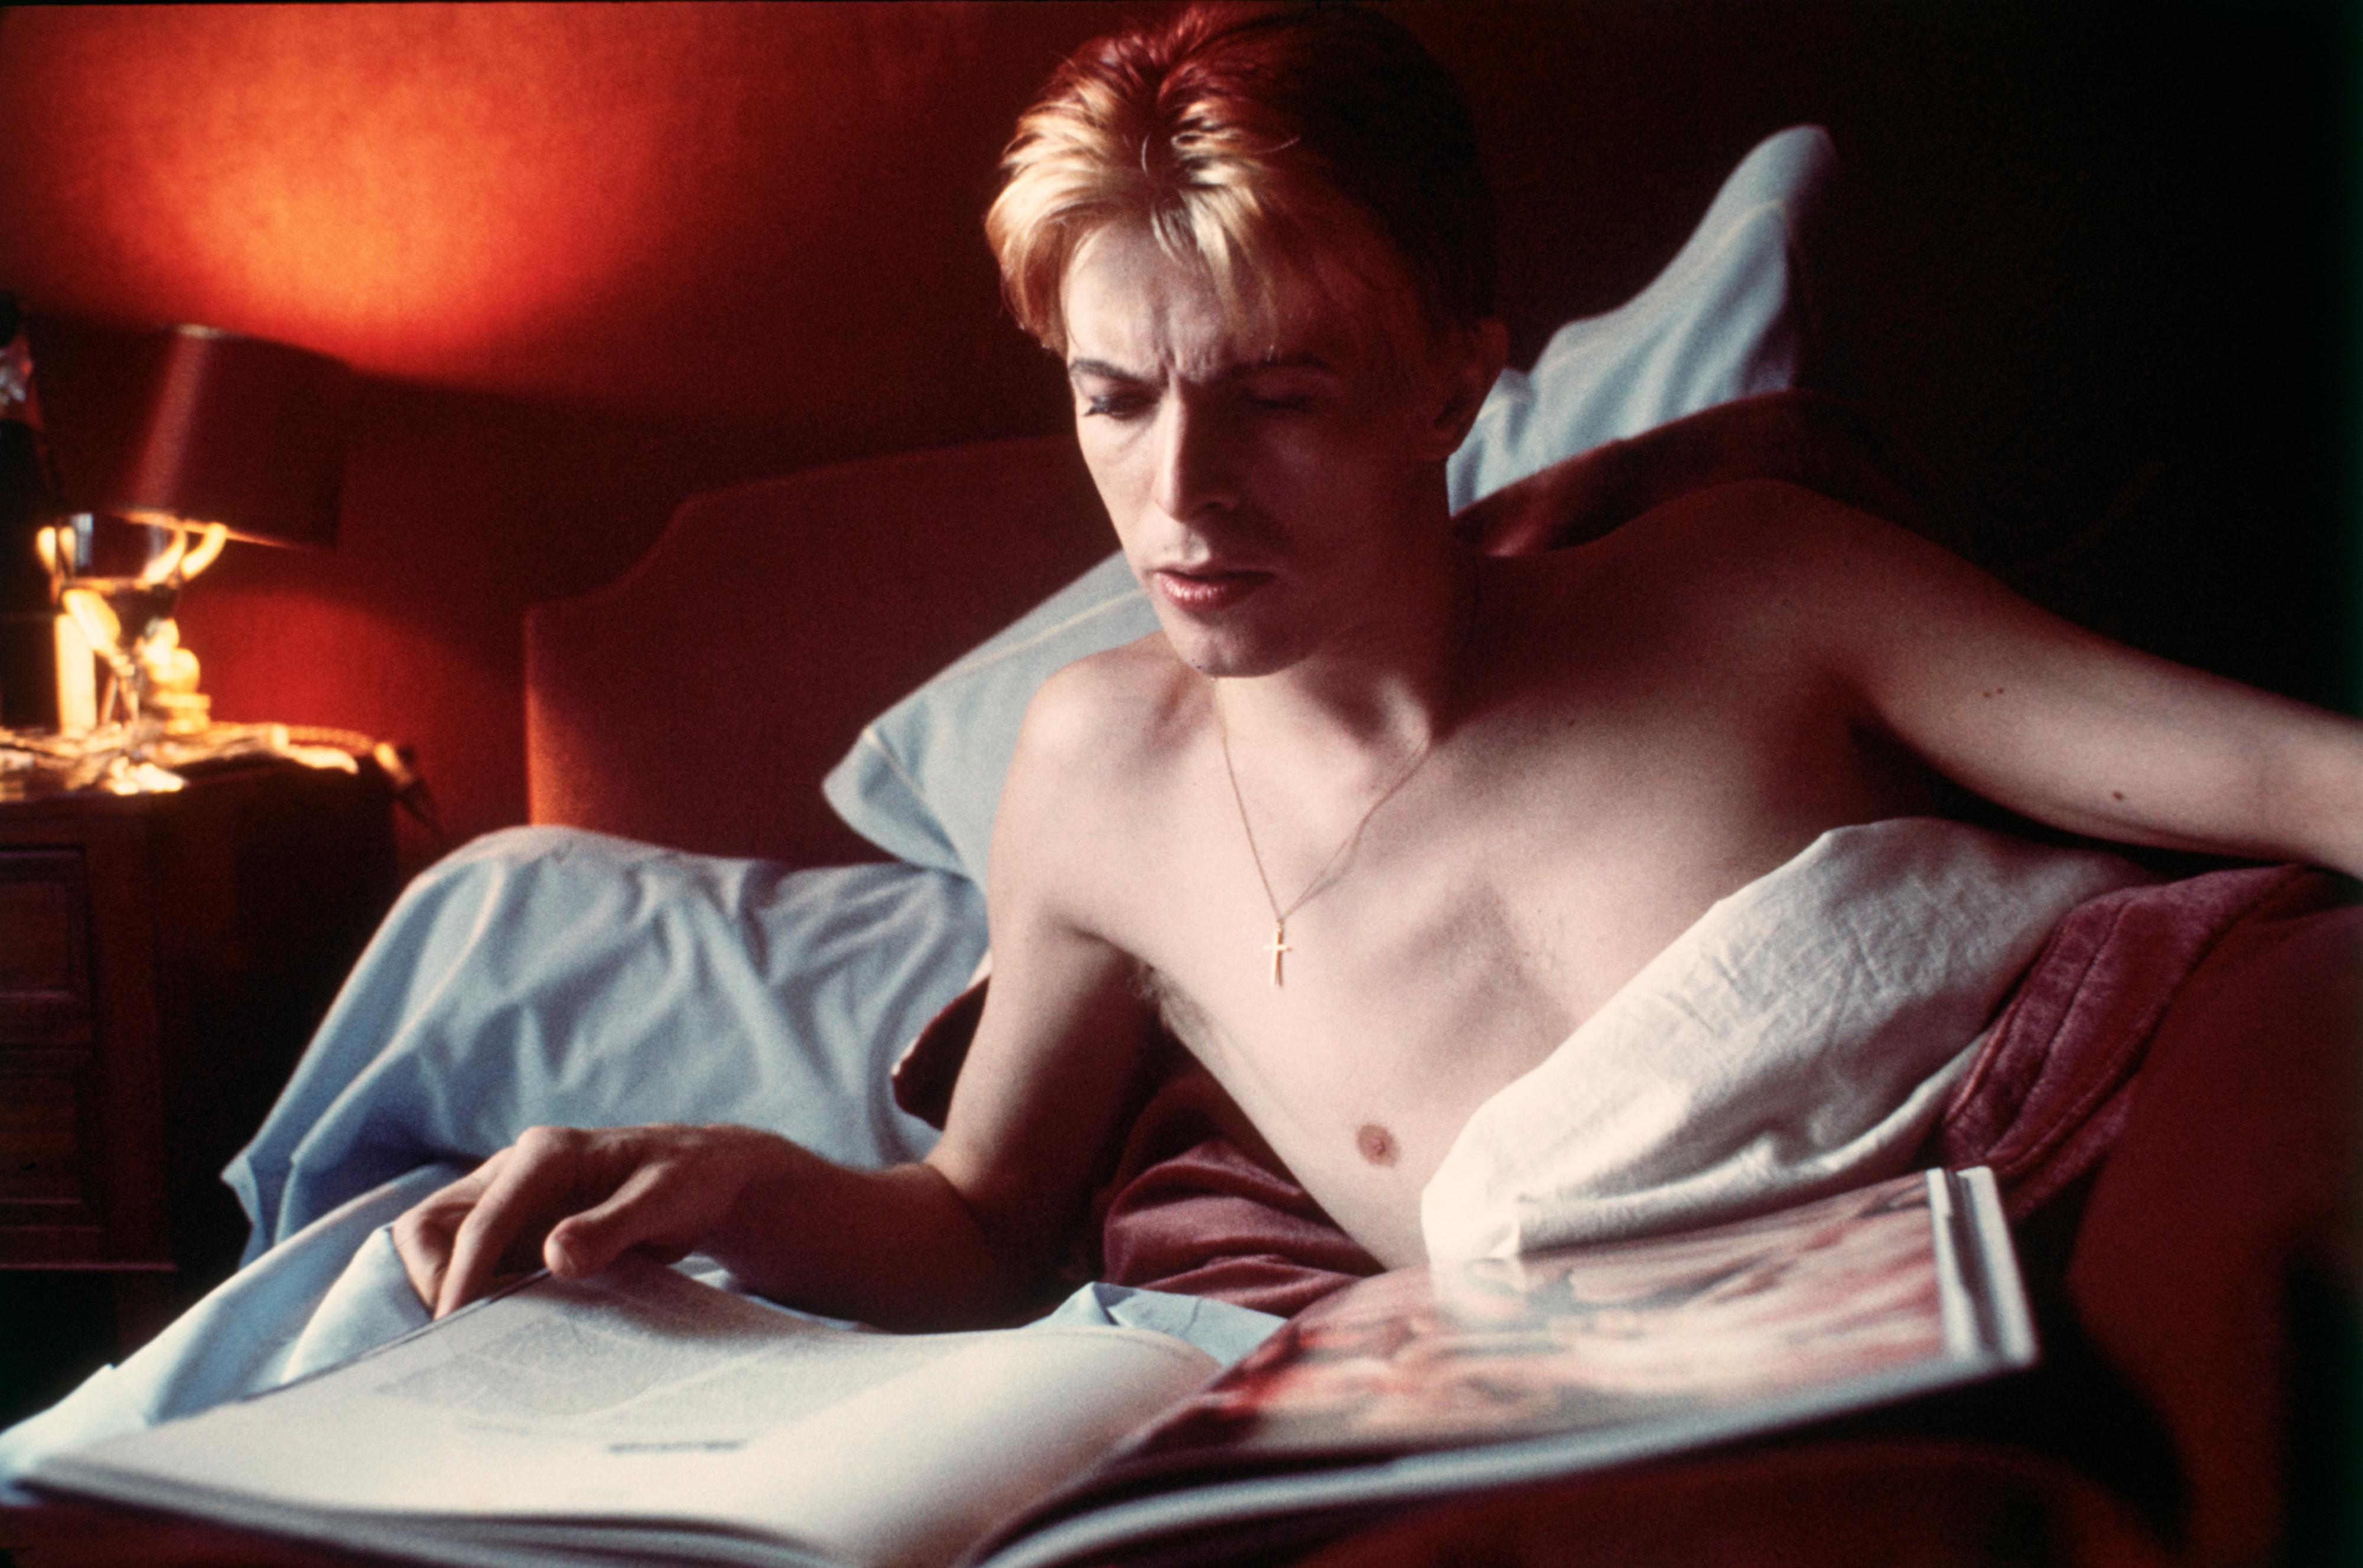 David Bowie reads a book in his bed during a rare quiet moment in his suite at L'Hotel in Paris in 1976